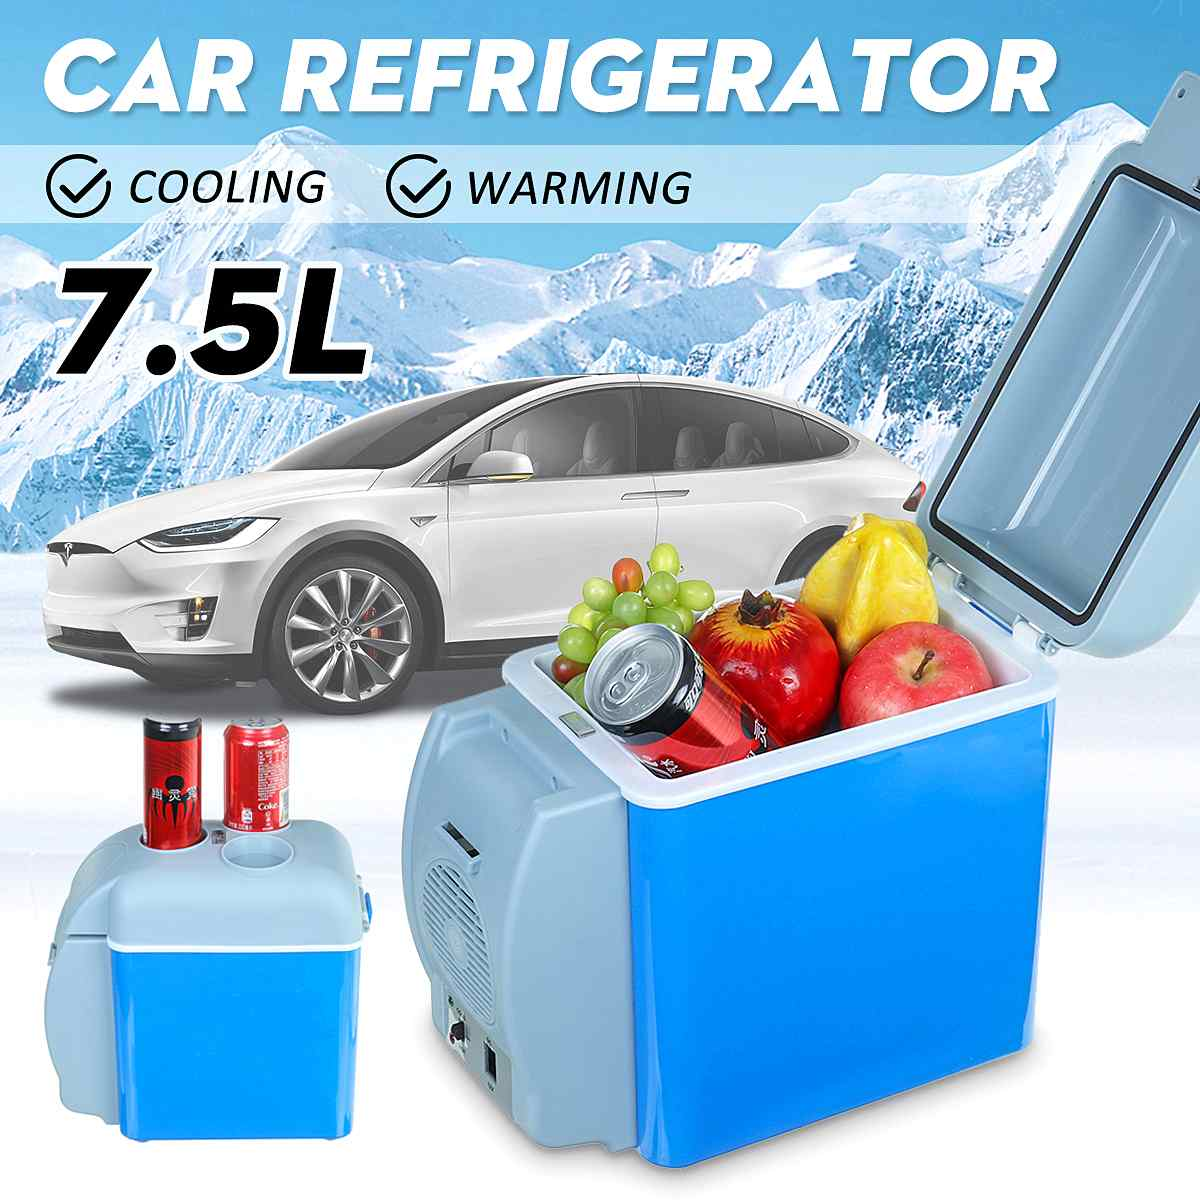 7 5L Mini Refrigerator Portable Cooler Warmer Freeze heating Fridge Box For Car Home Truck Thermoelectric Electric Fridge